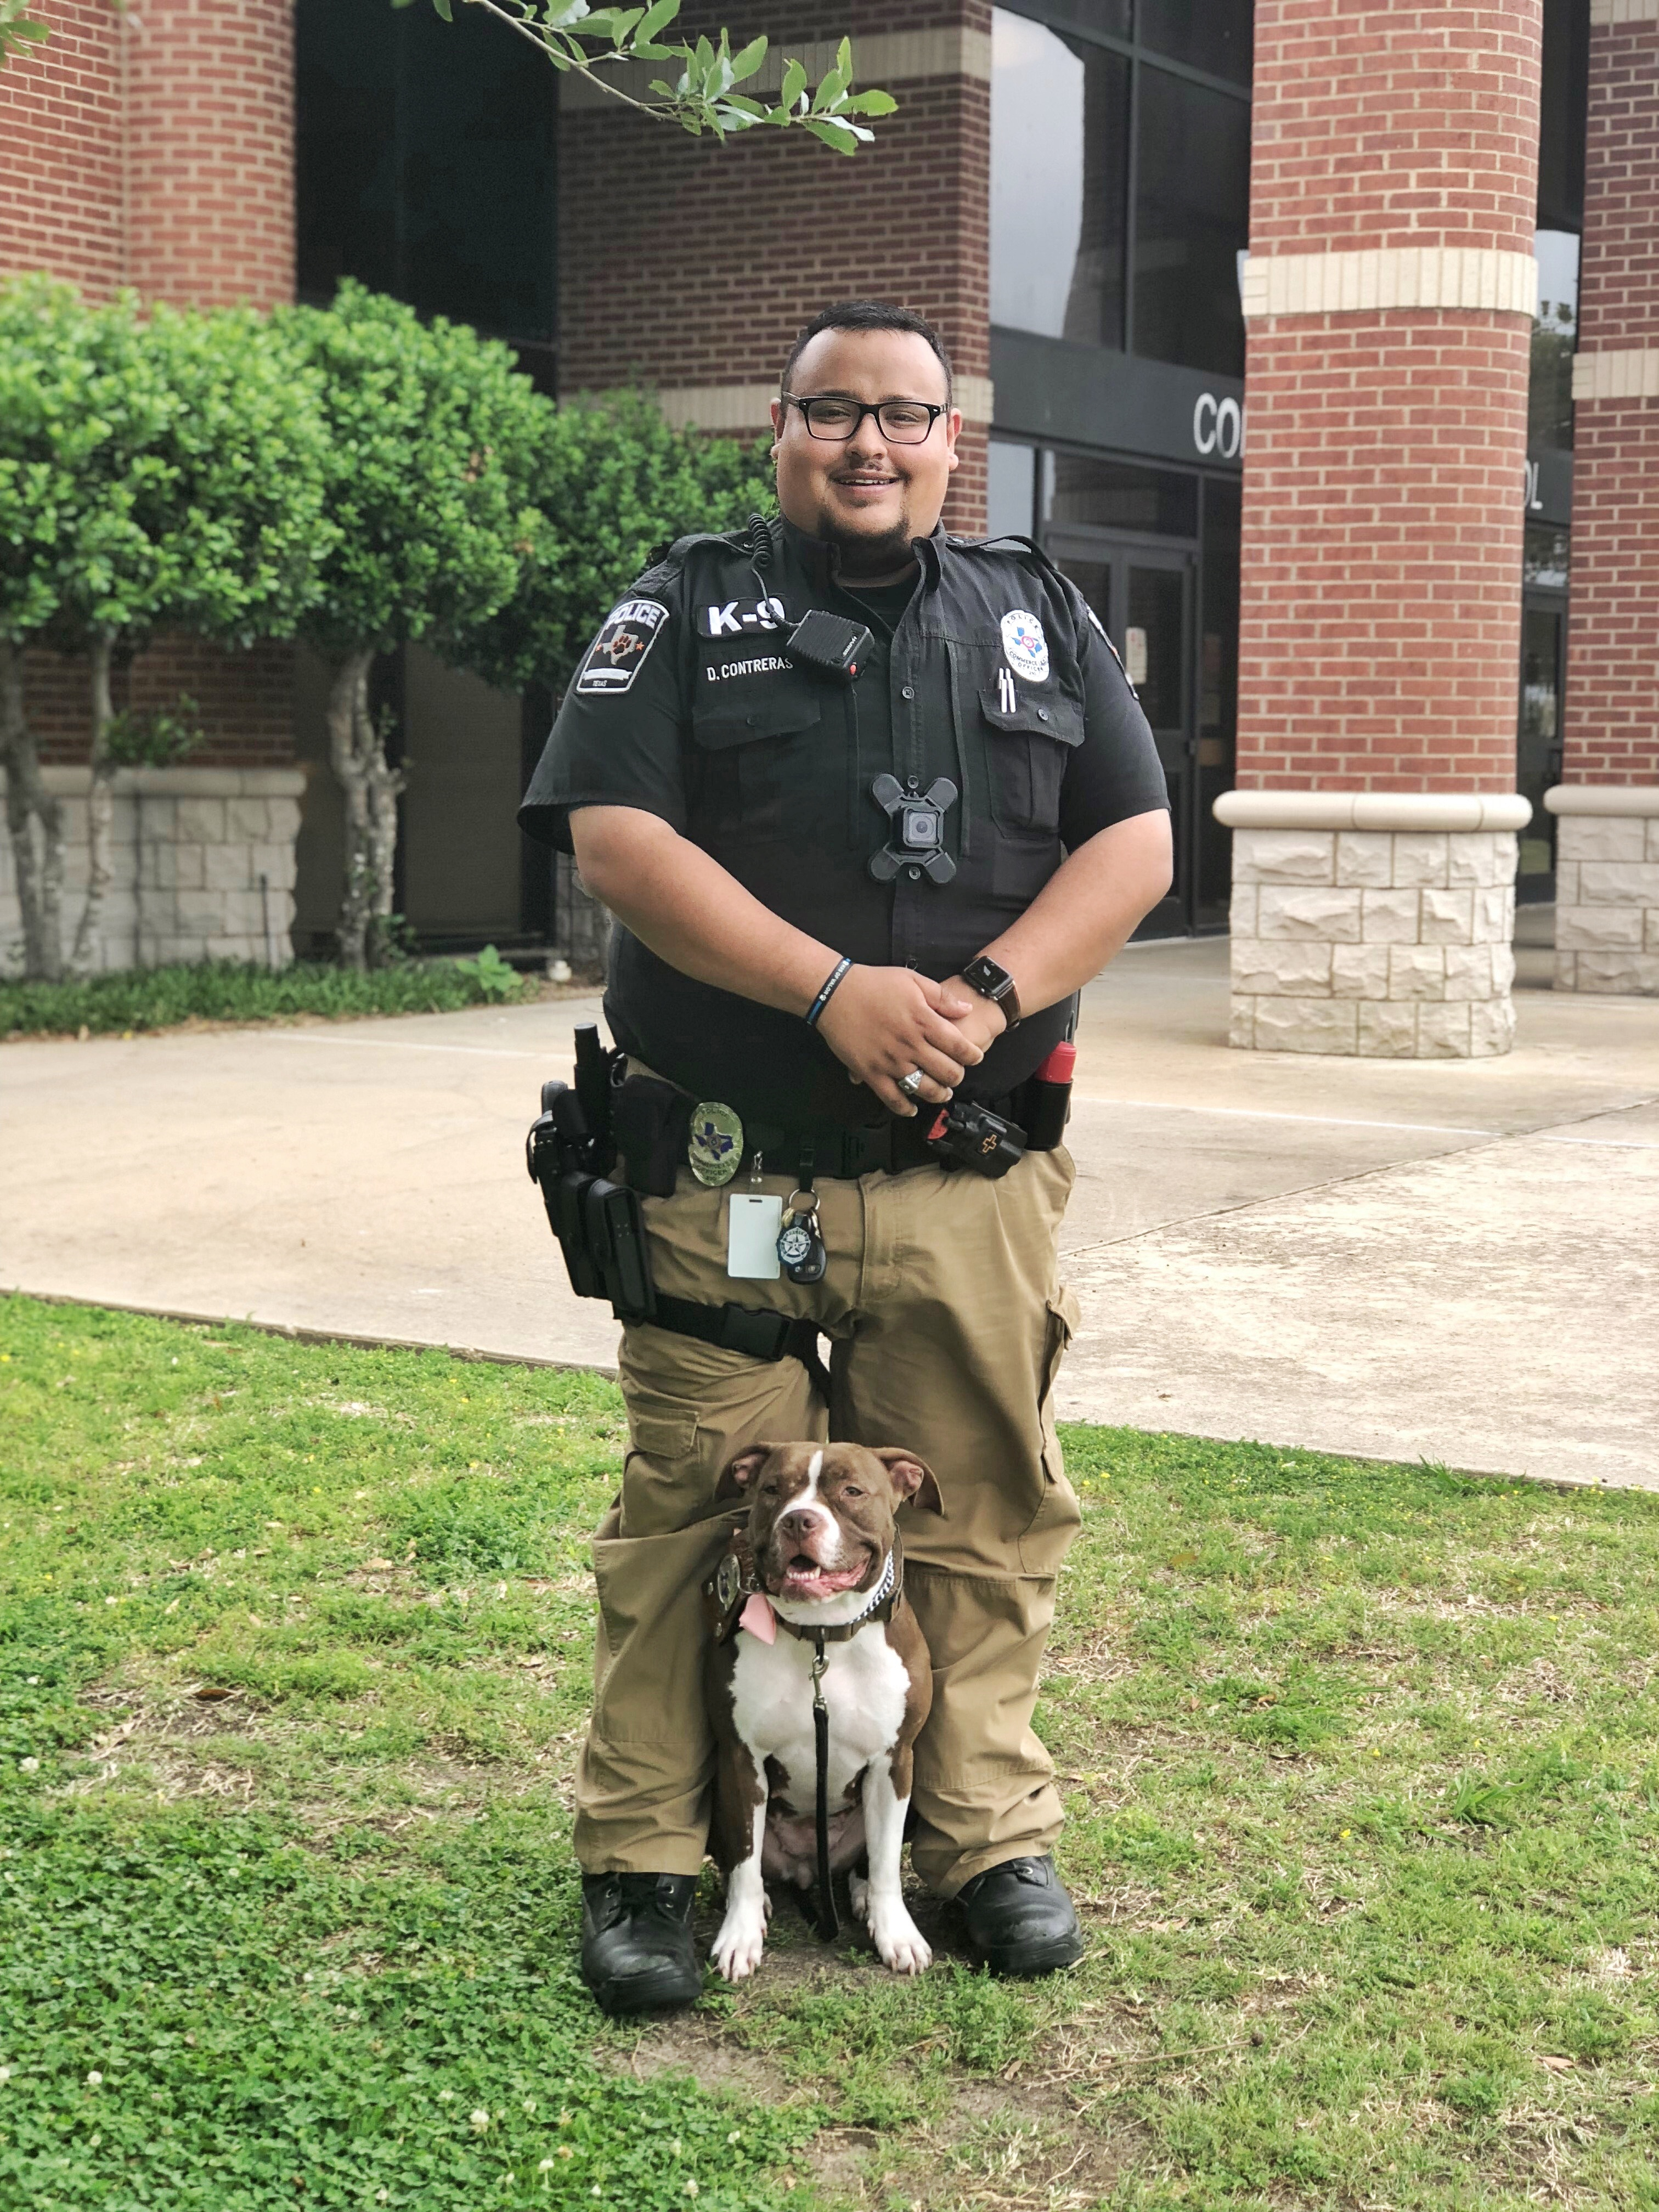 Officer Contreras and Coco.jpeg